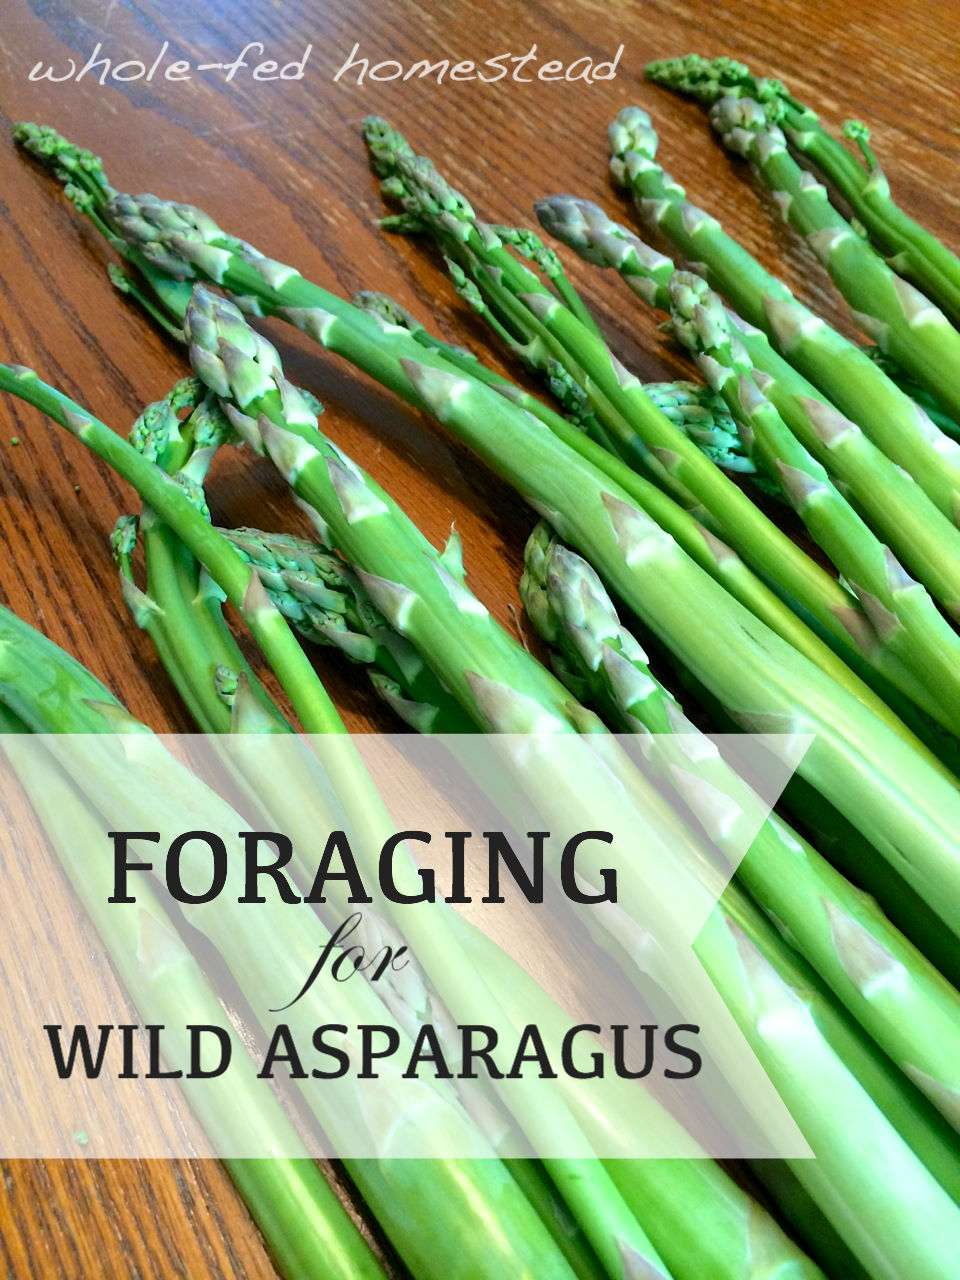 How to Hunt and Forage for Wild Asparagus